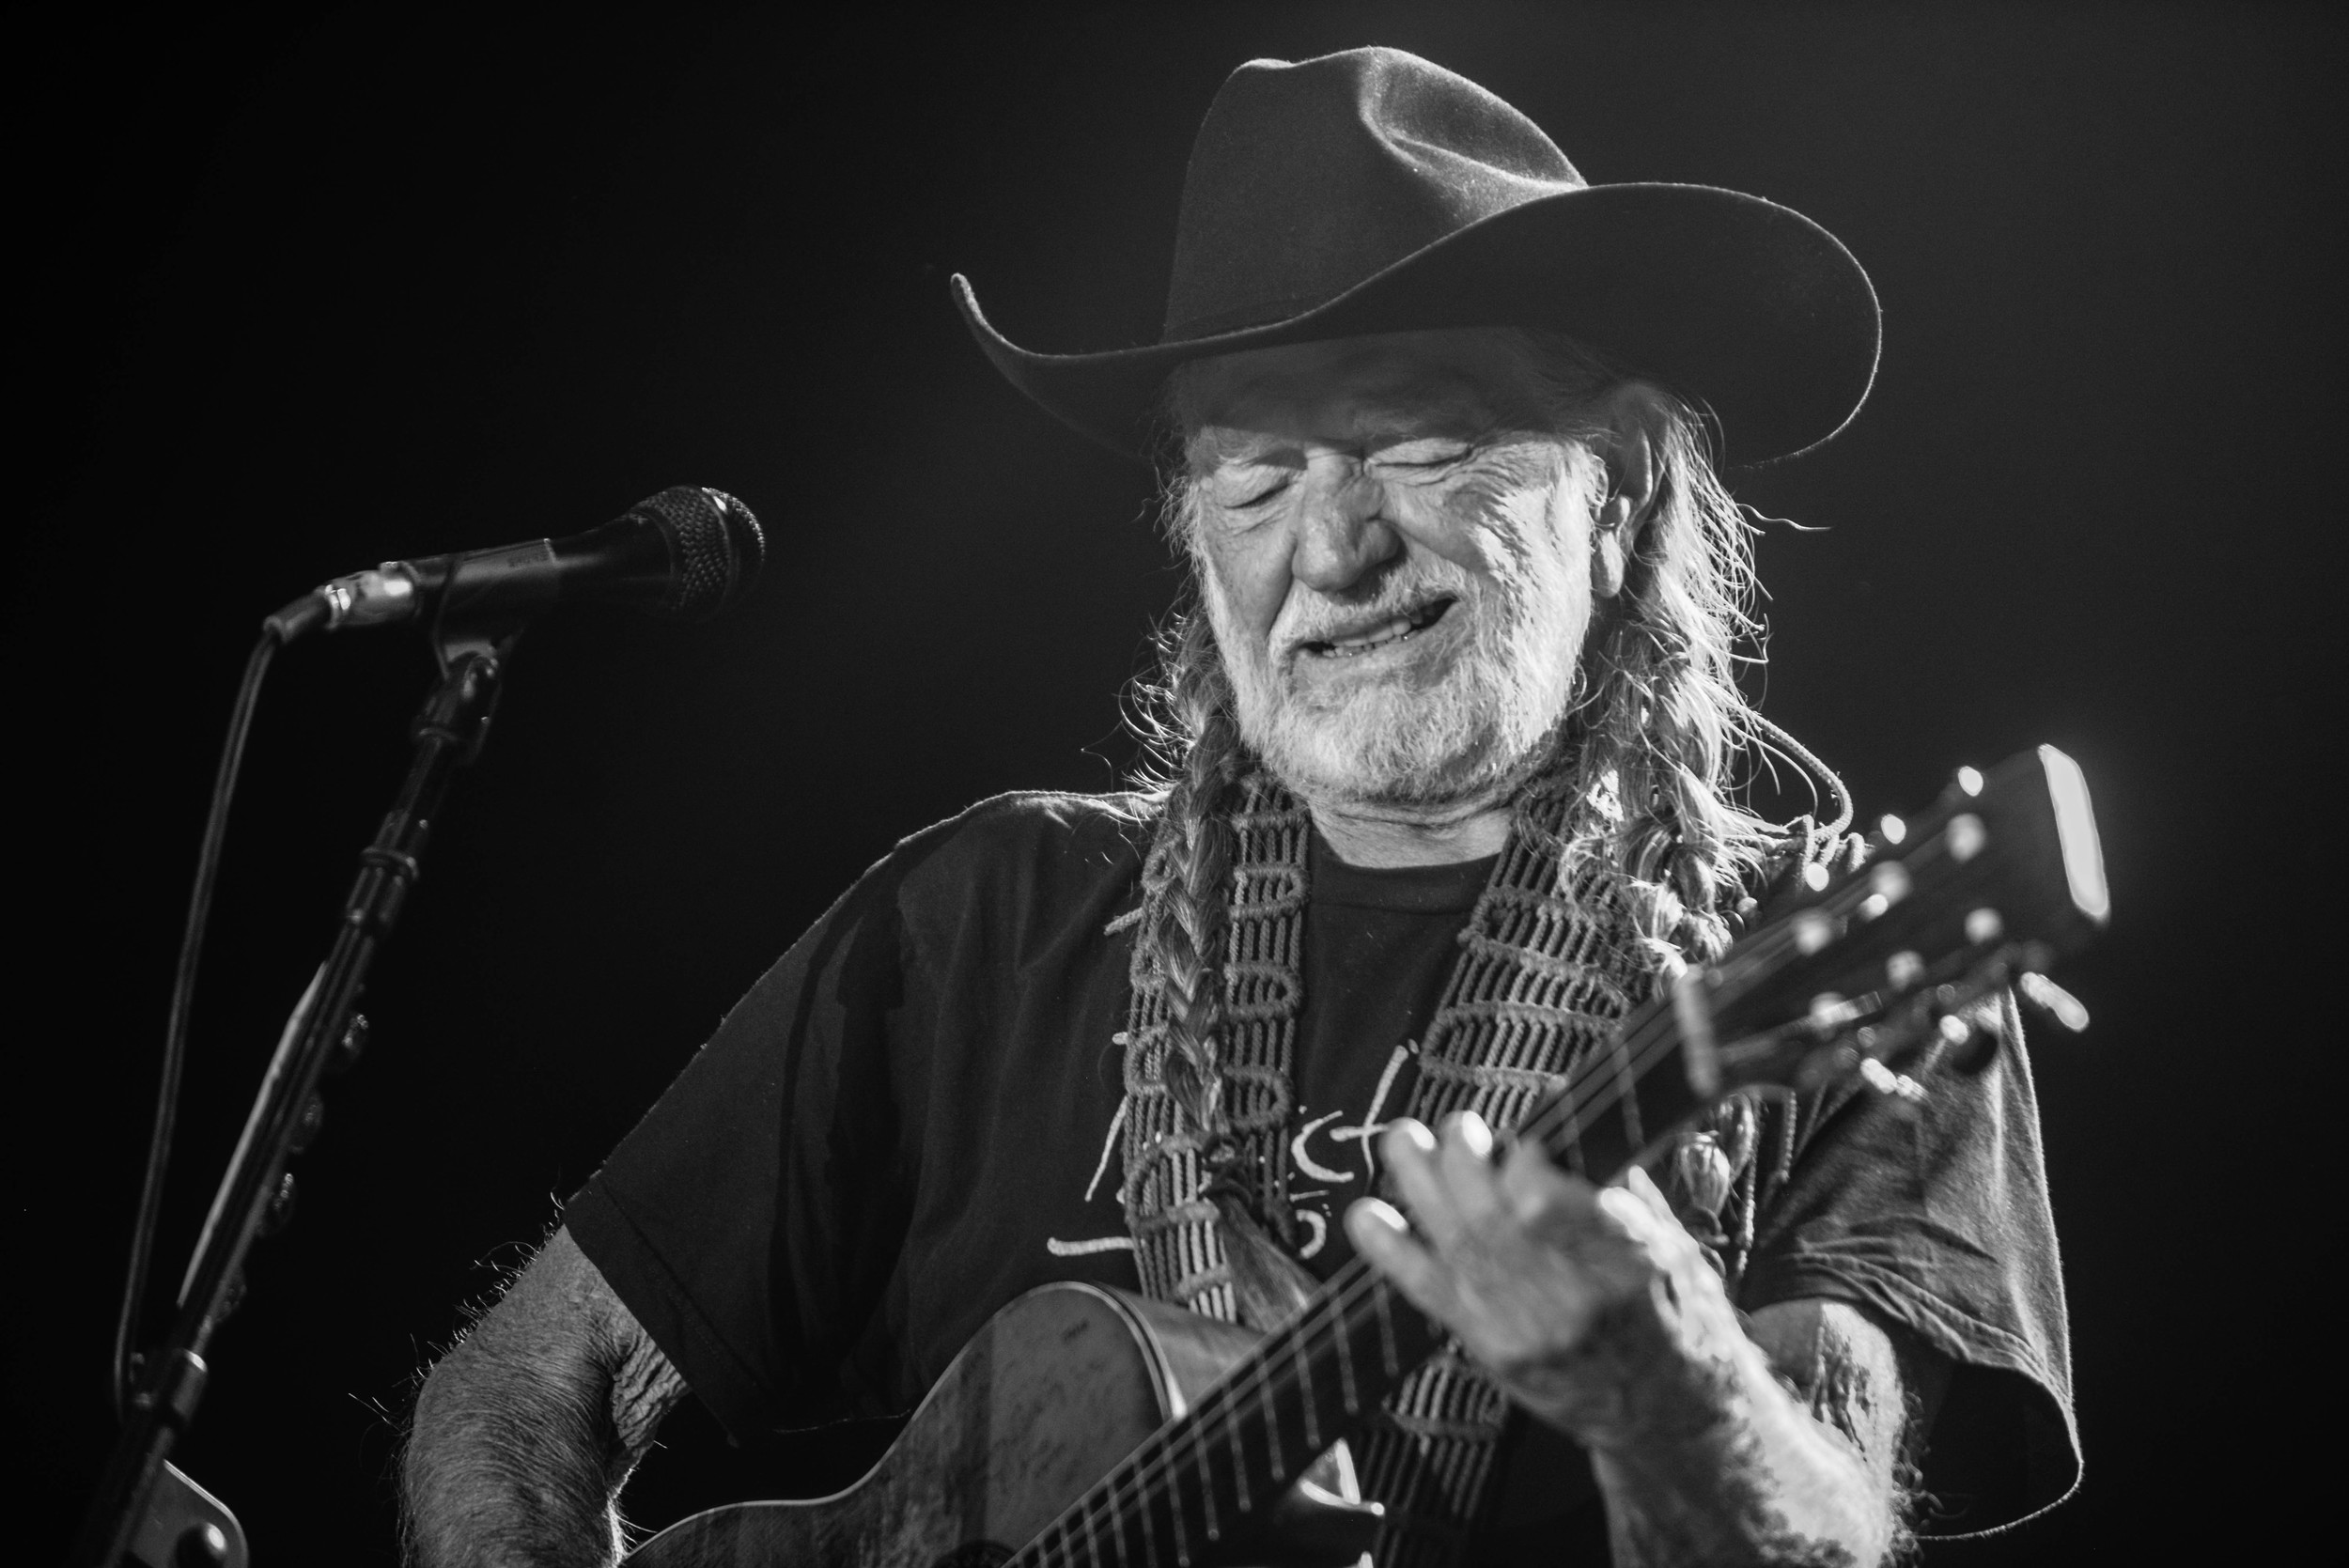 Willie Nelson. 'Nuff said.